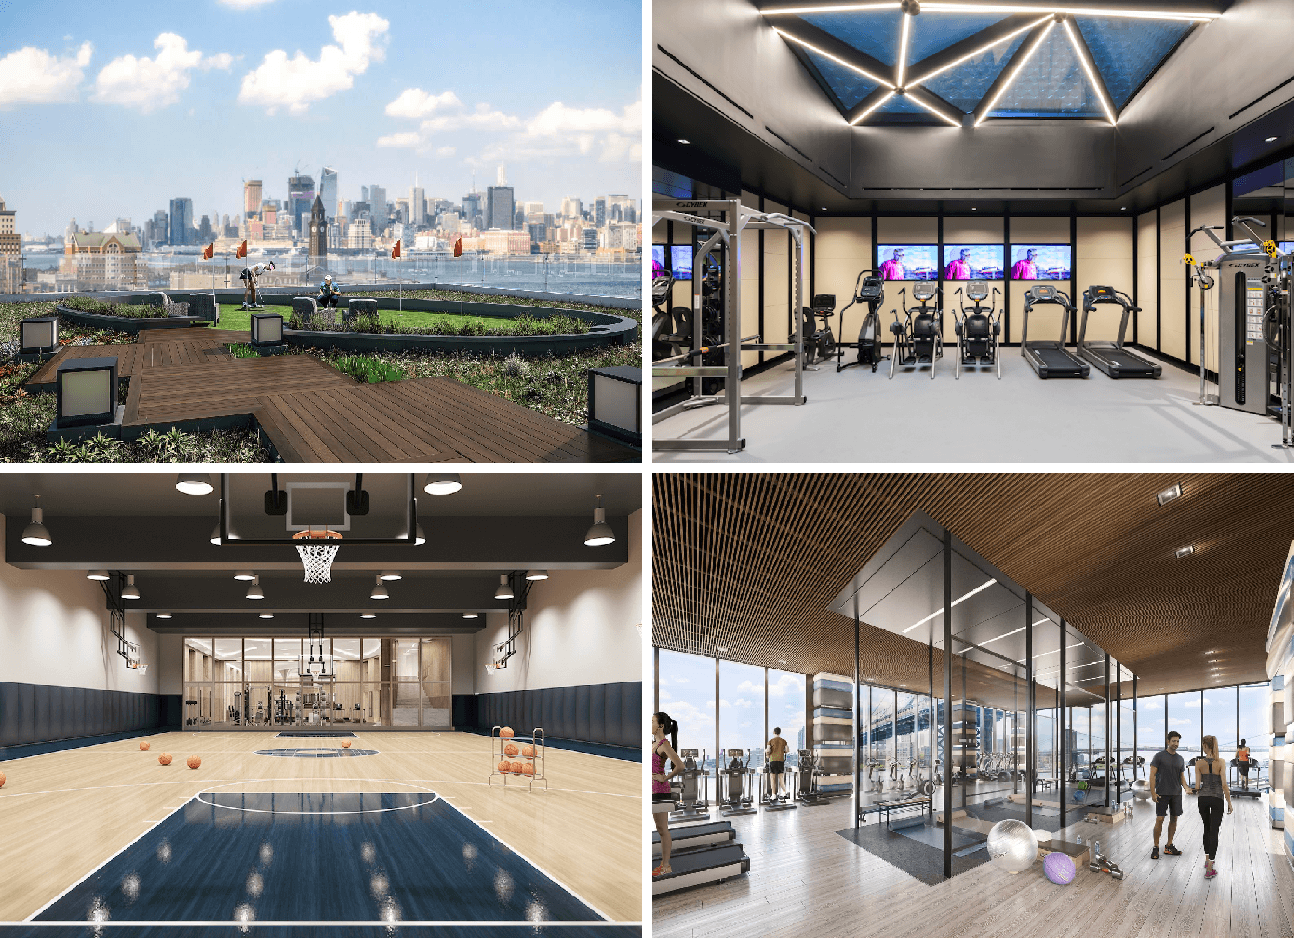 the 15 best gyms in nyc residential buildings 6sqft best gyms in nyc residential buildings